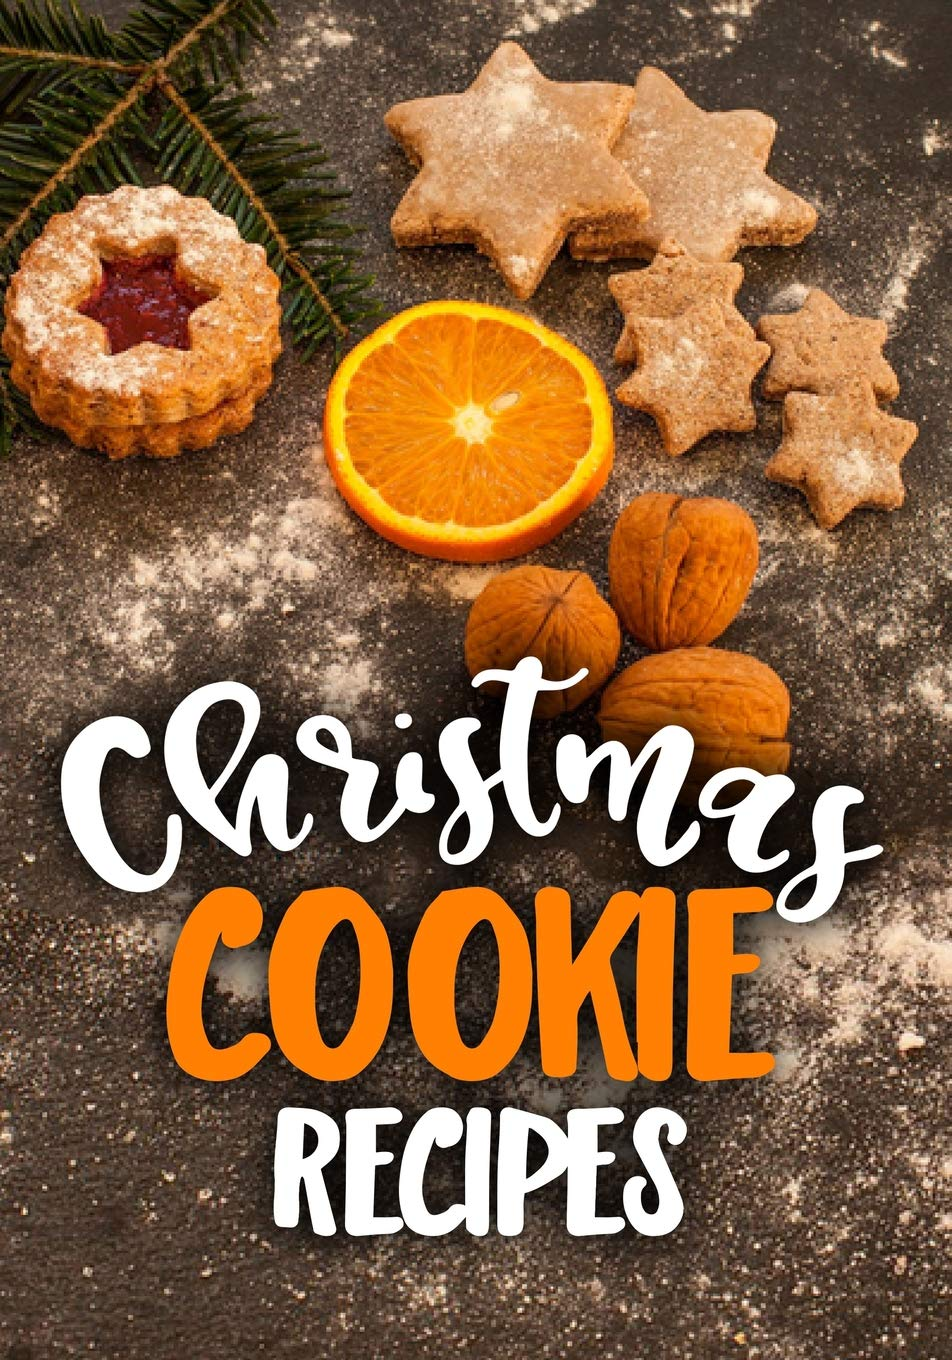 Christmas Cookies Recipes 2019.Christmas Cookie Recipes Blank Recipe Book To Write In